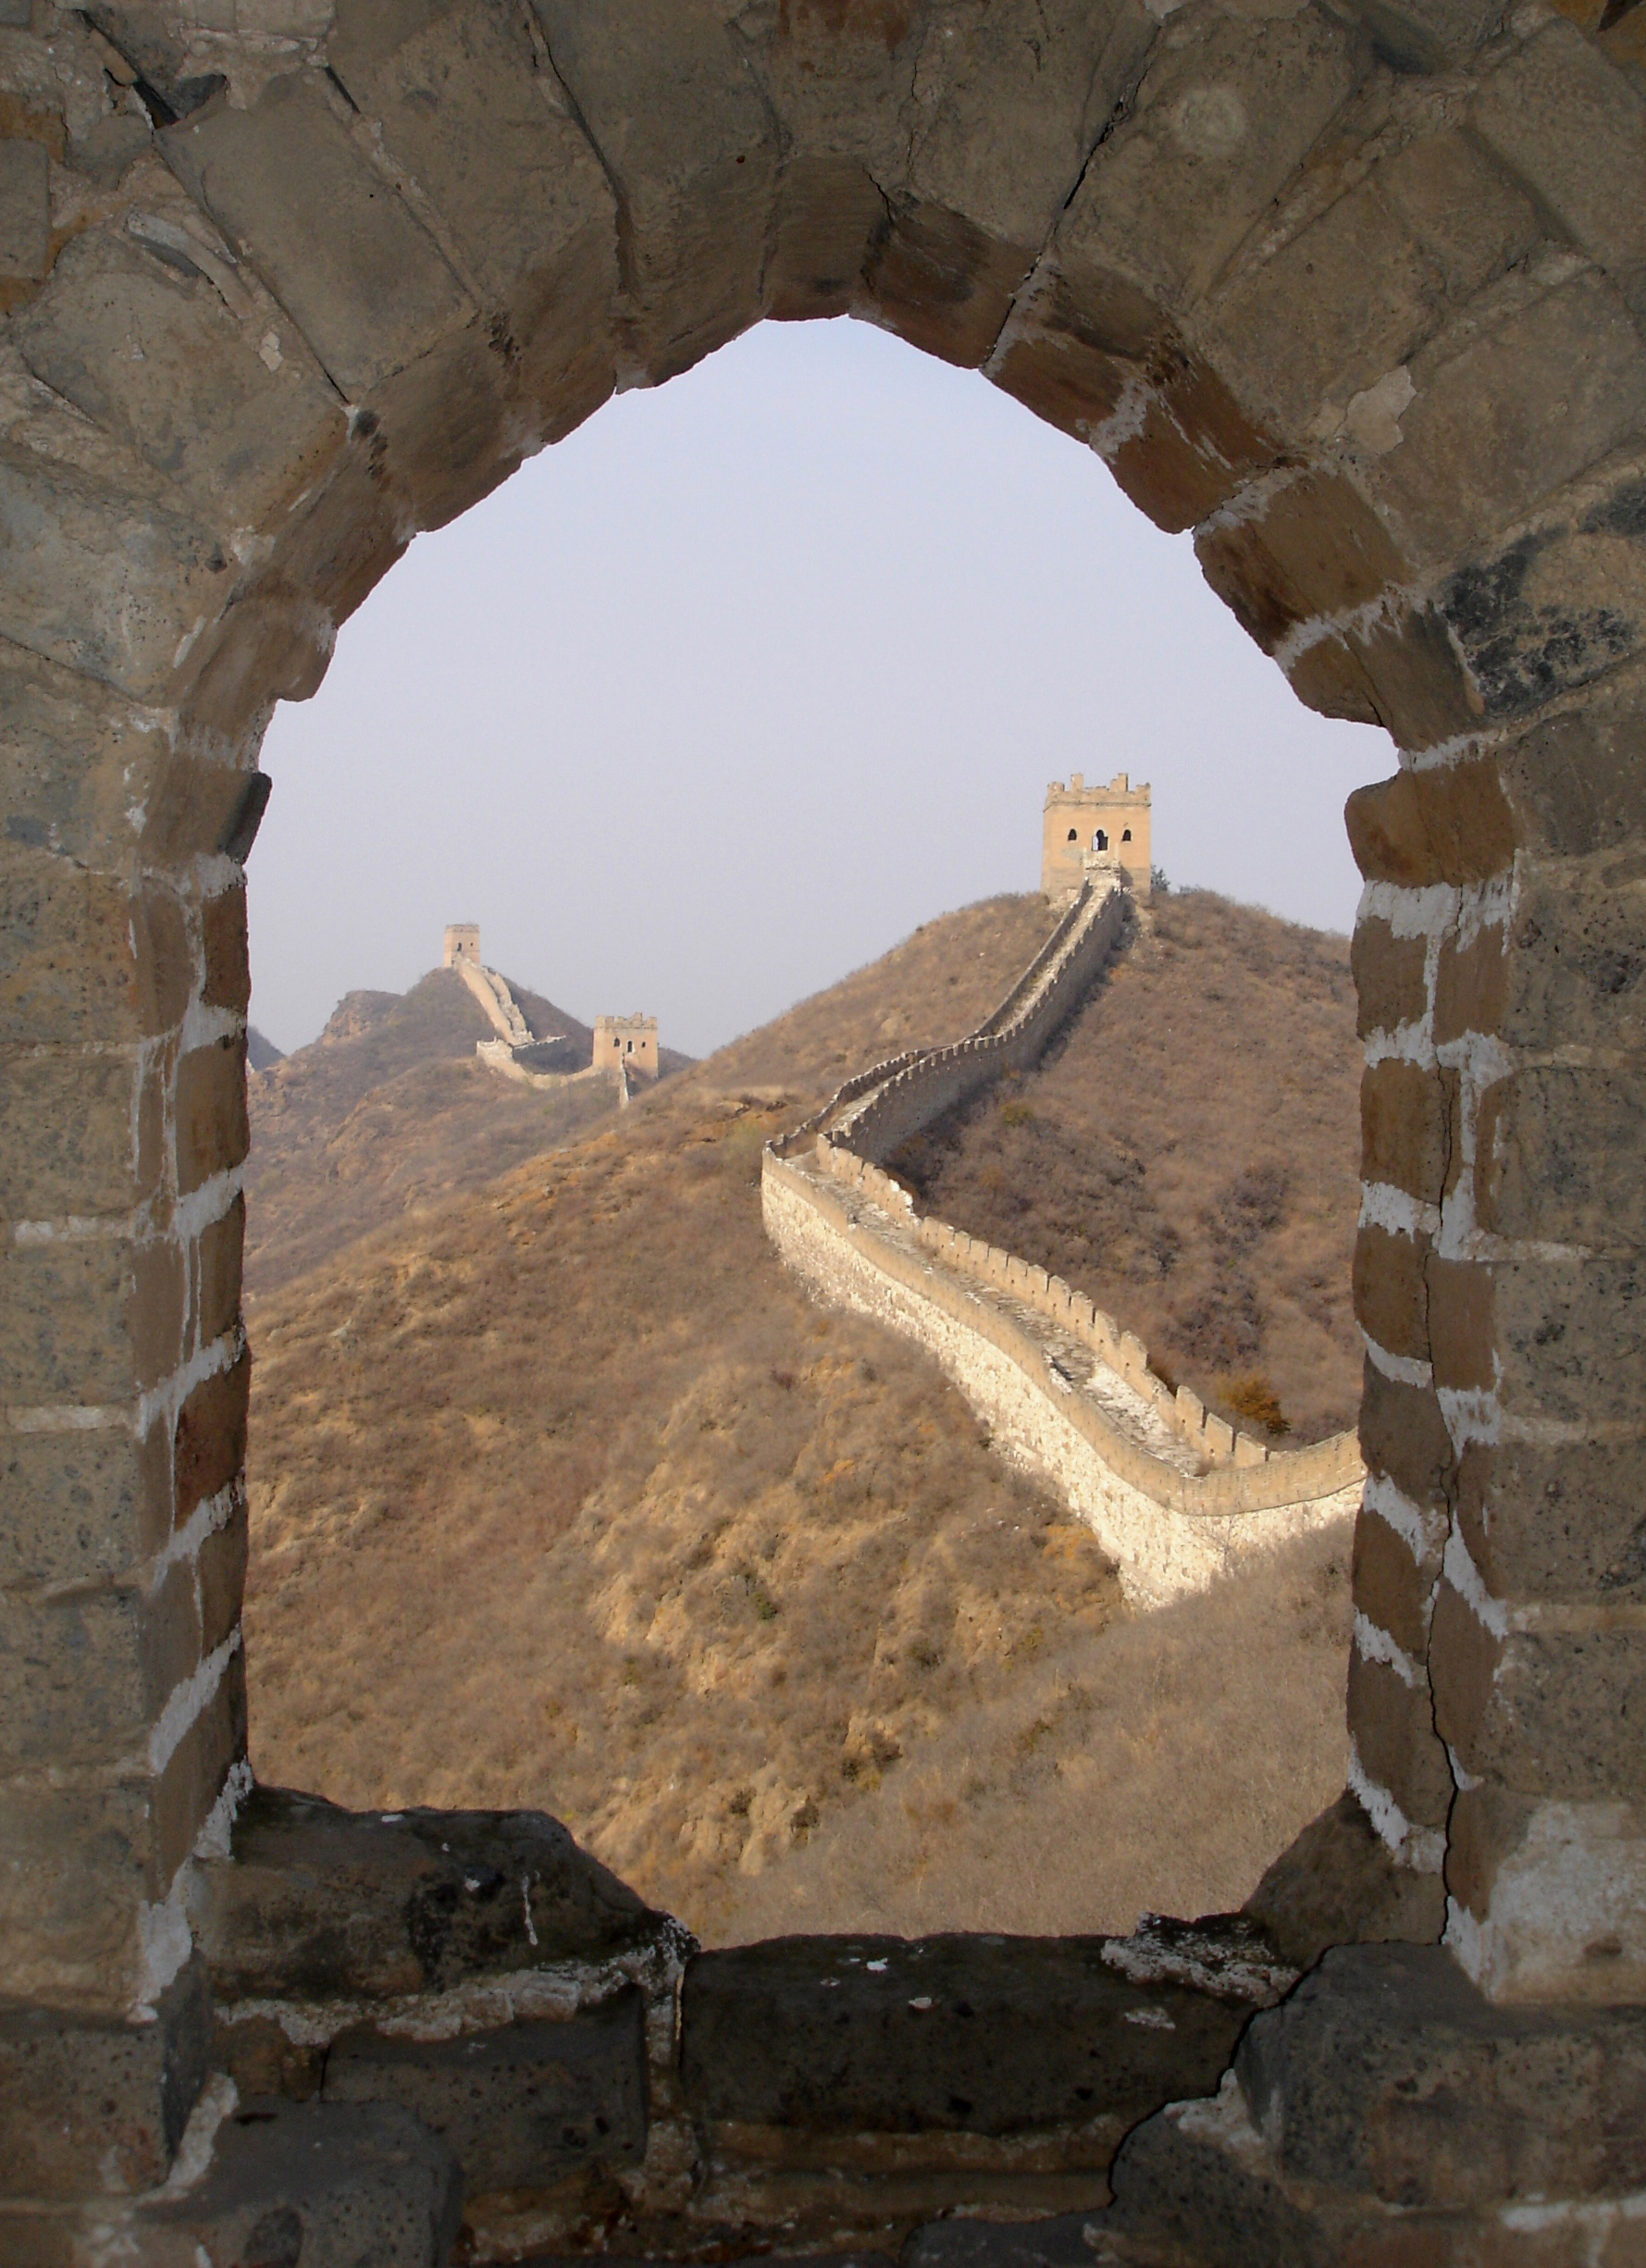 Great_Wall_of_China,_Framed_view.jpg